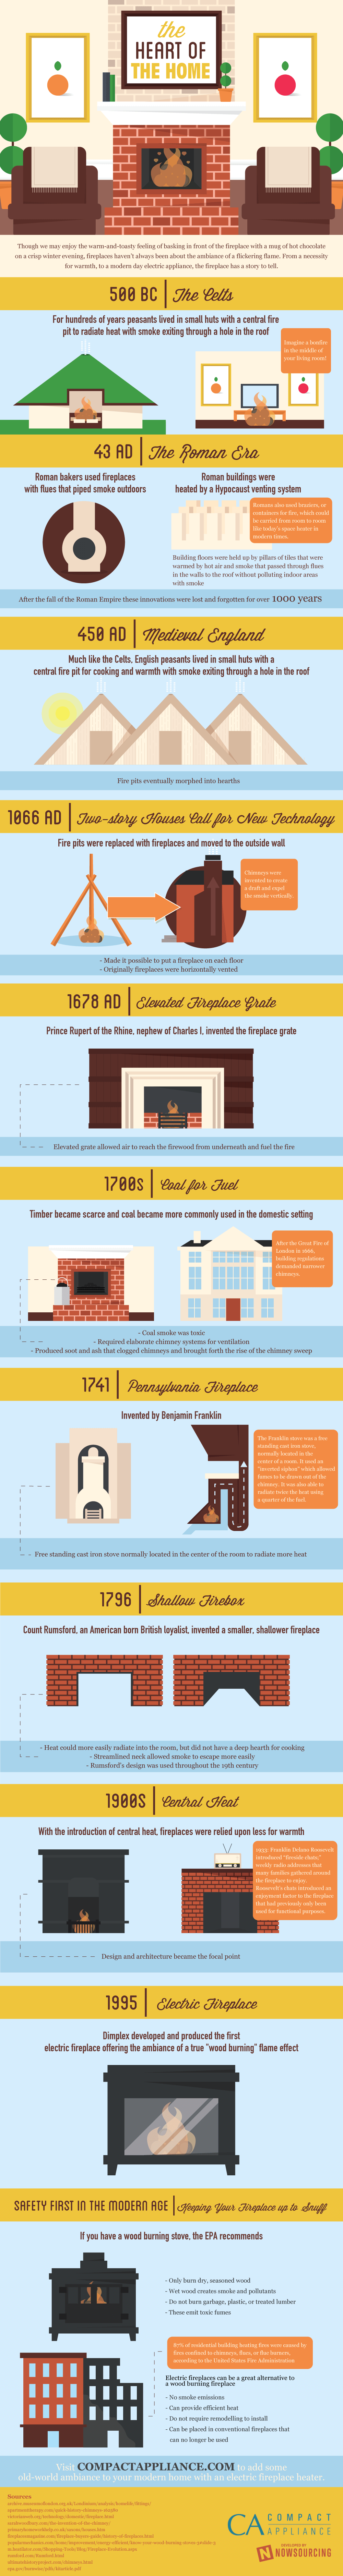 fireplace-infographic